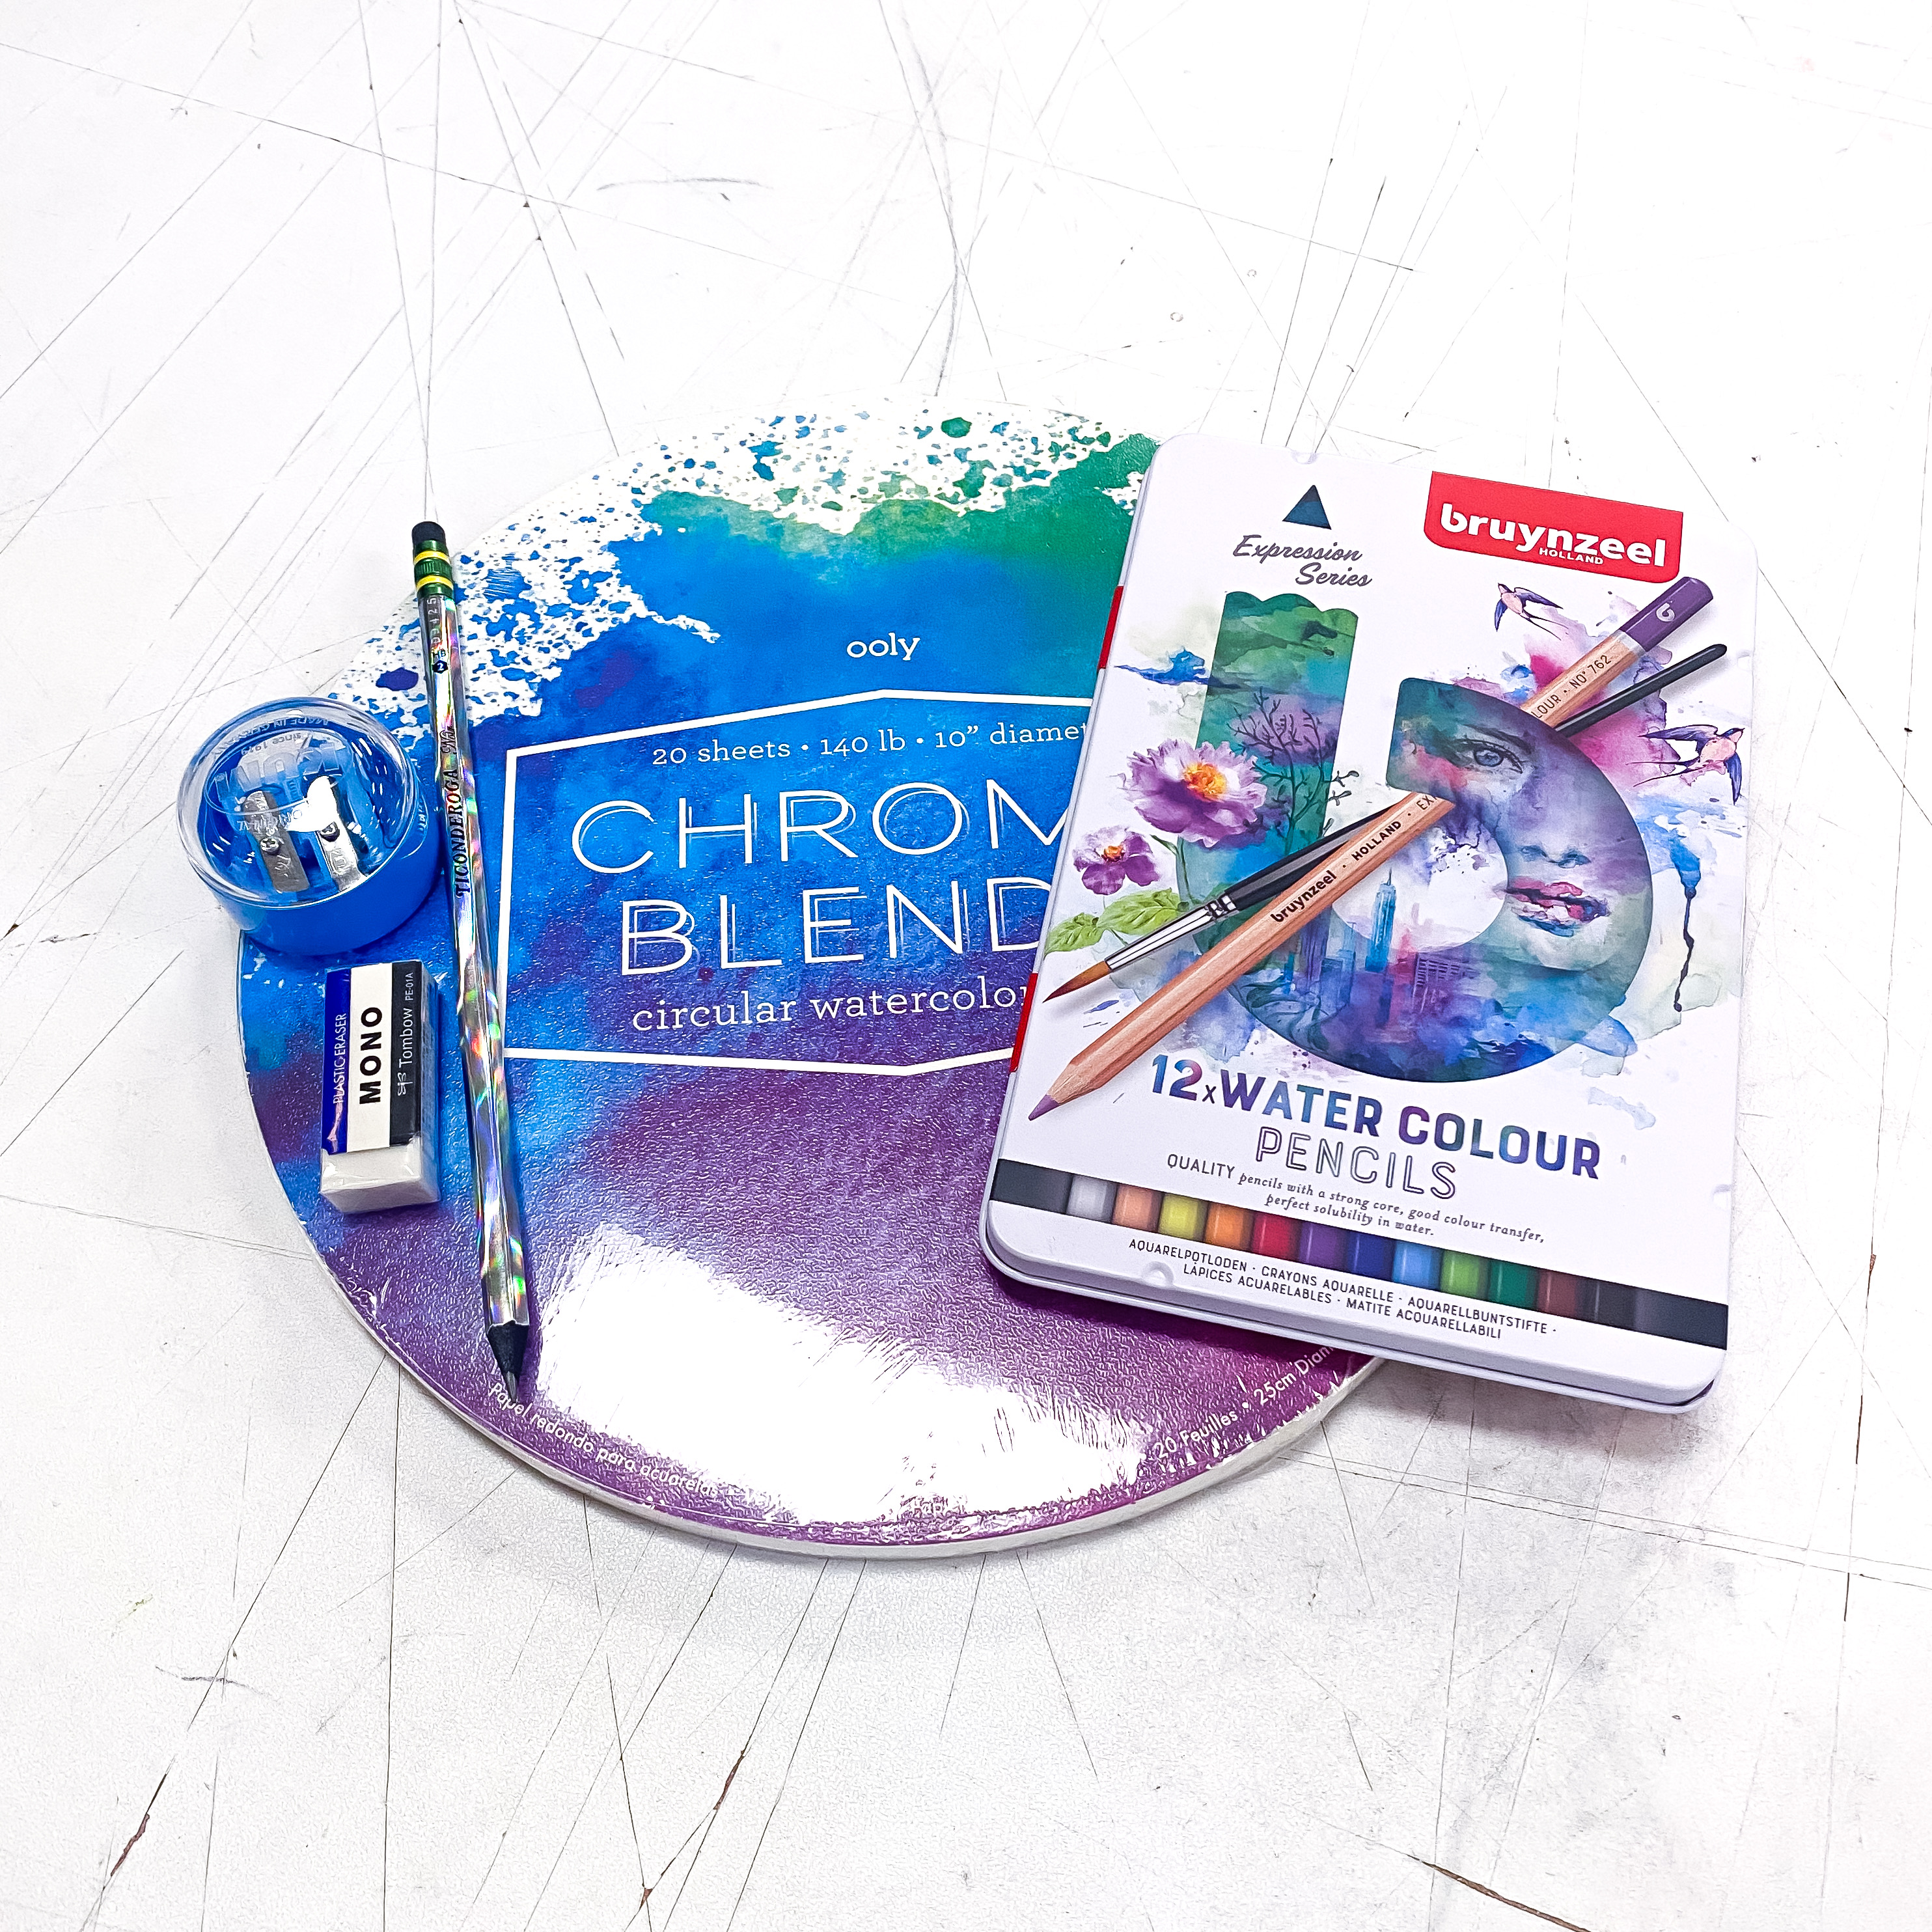 Round Watercolor Pencil Kit!